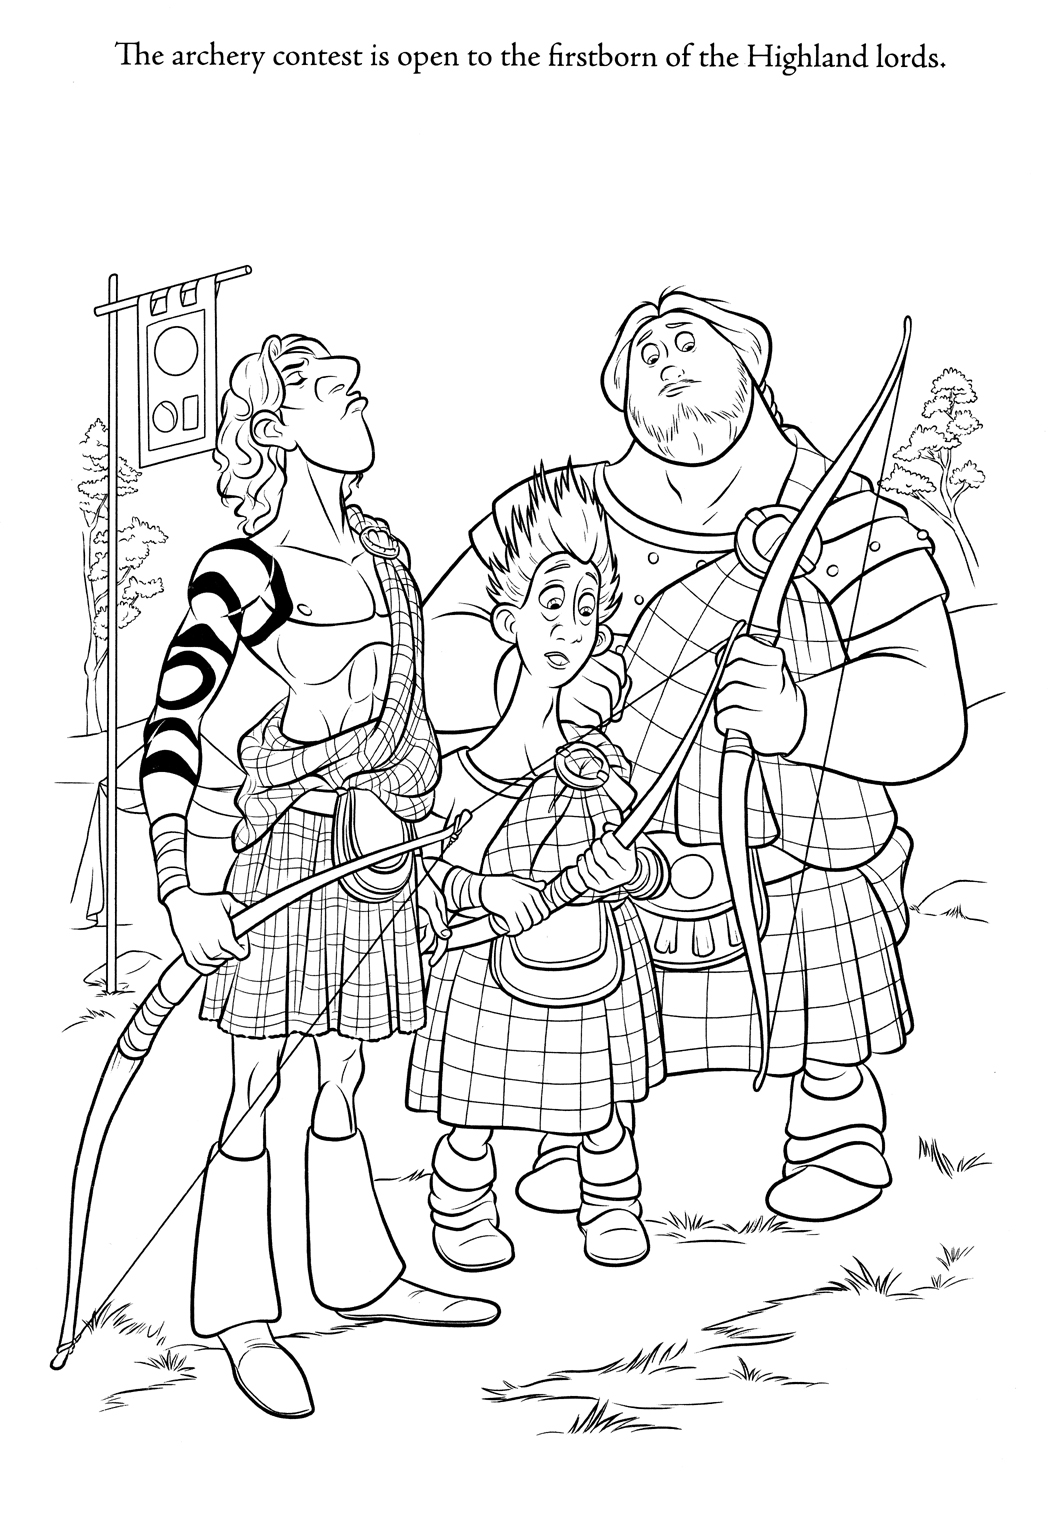 colouring pages to print free picnic coloring pages to download and print for free to pages print colouring free